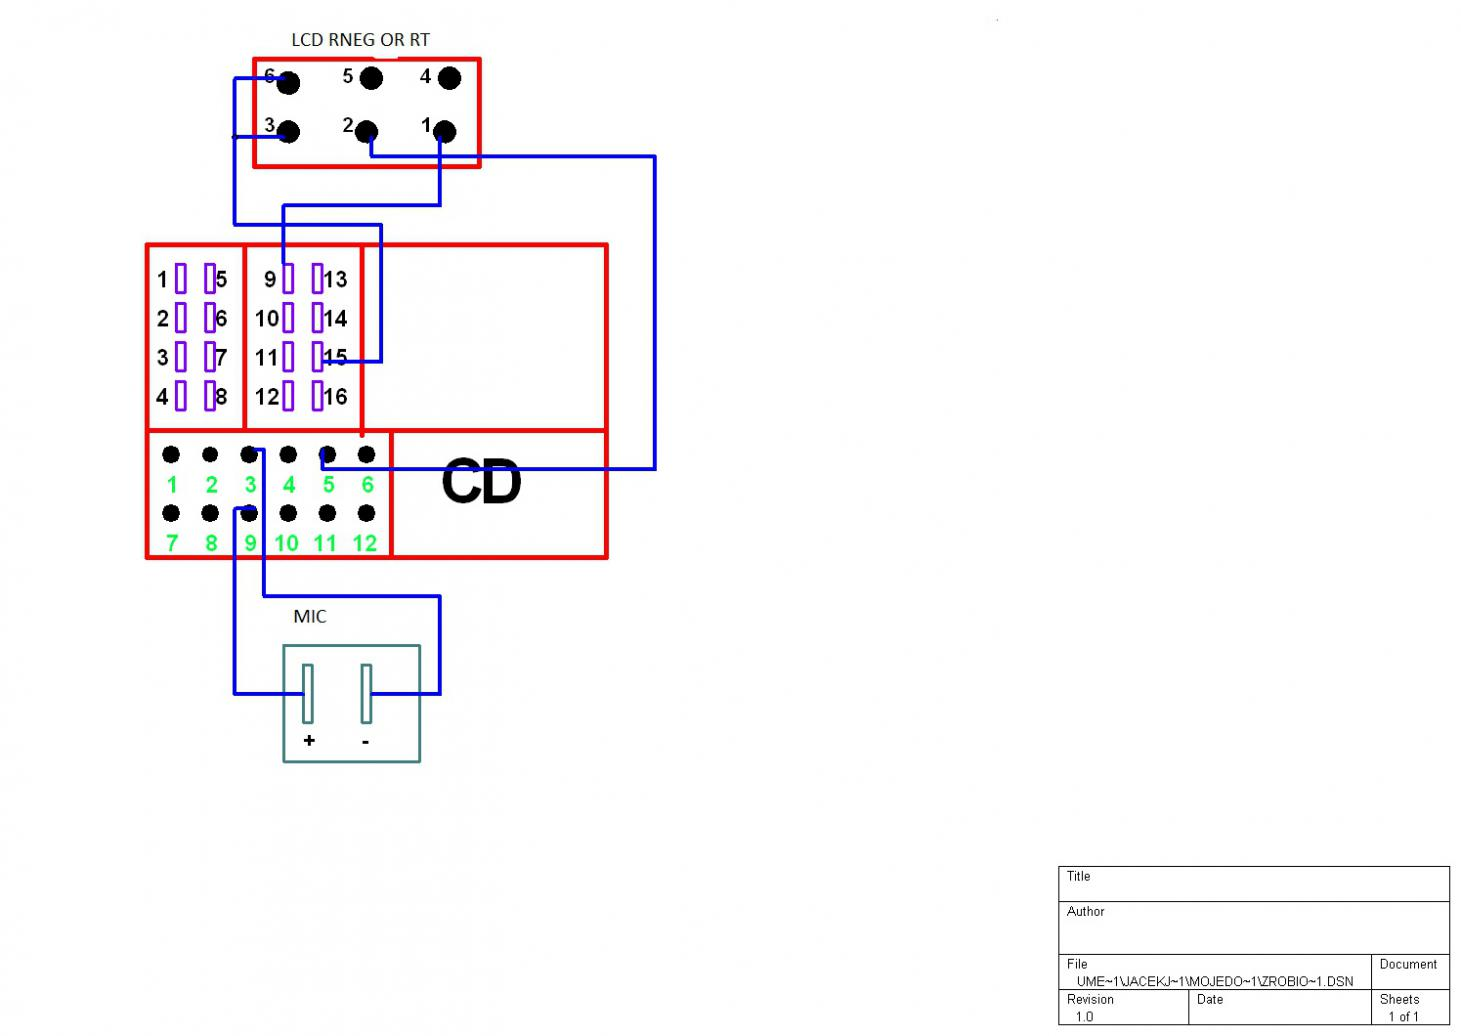 peugeot 407 wiring diagram 12 volt electric winch rneg sat nav fitting in forums